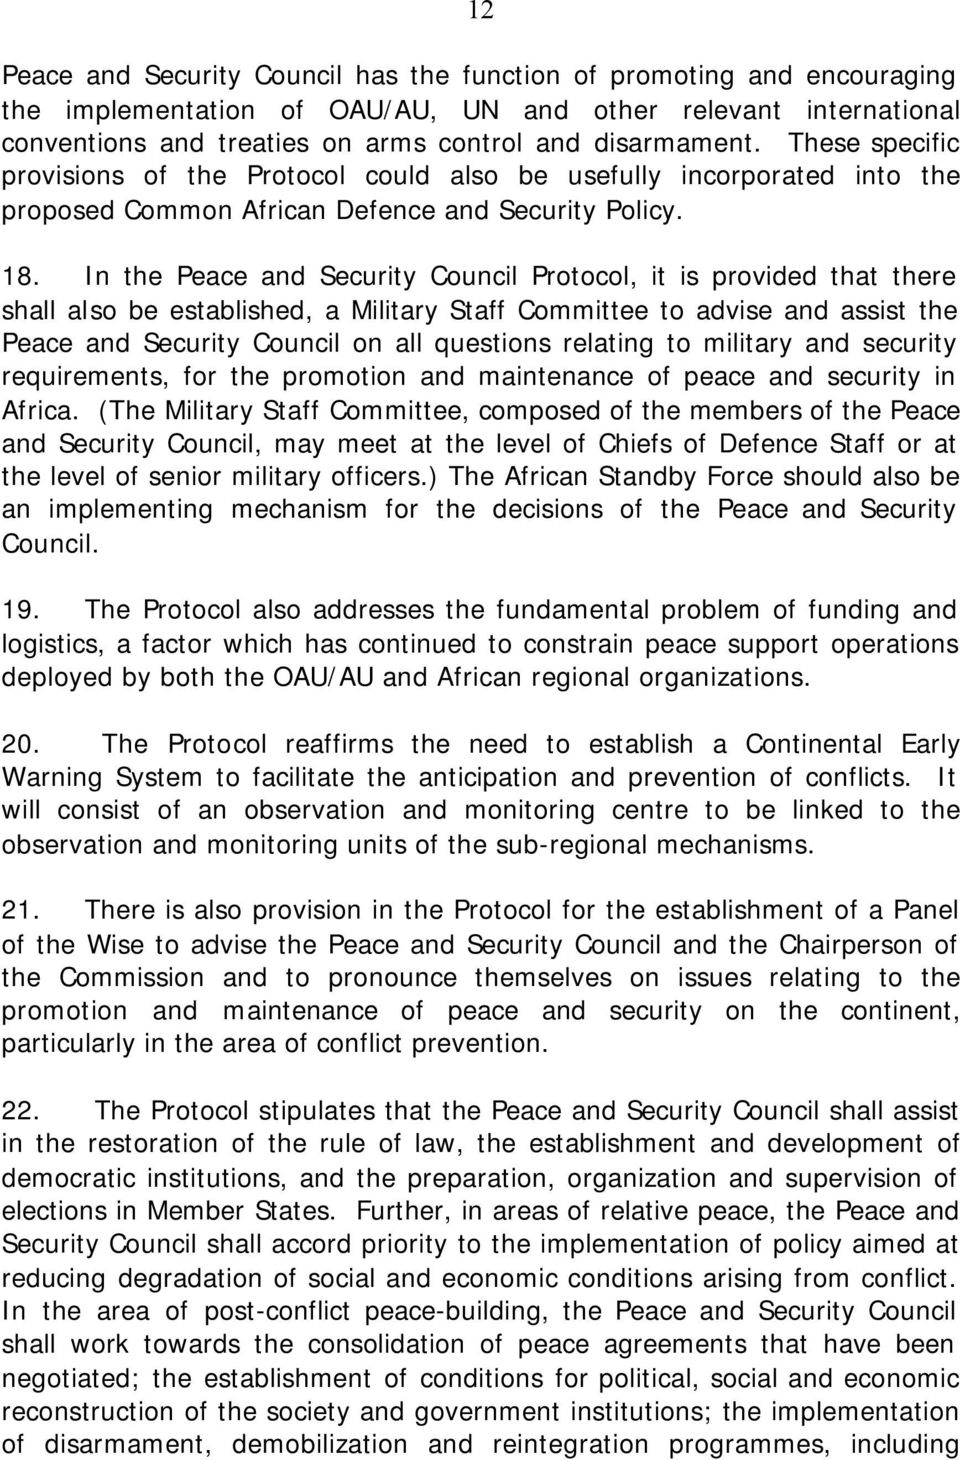 In the Peace and Security Council Protocol, it is provided that there shall also be established, a Military Staff Committee to advise and assist the Peace and Security Council on all questions